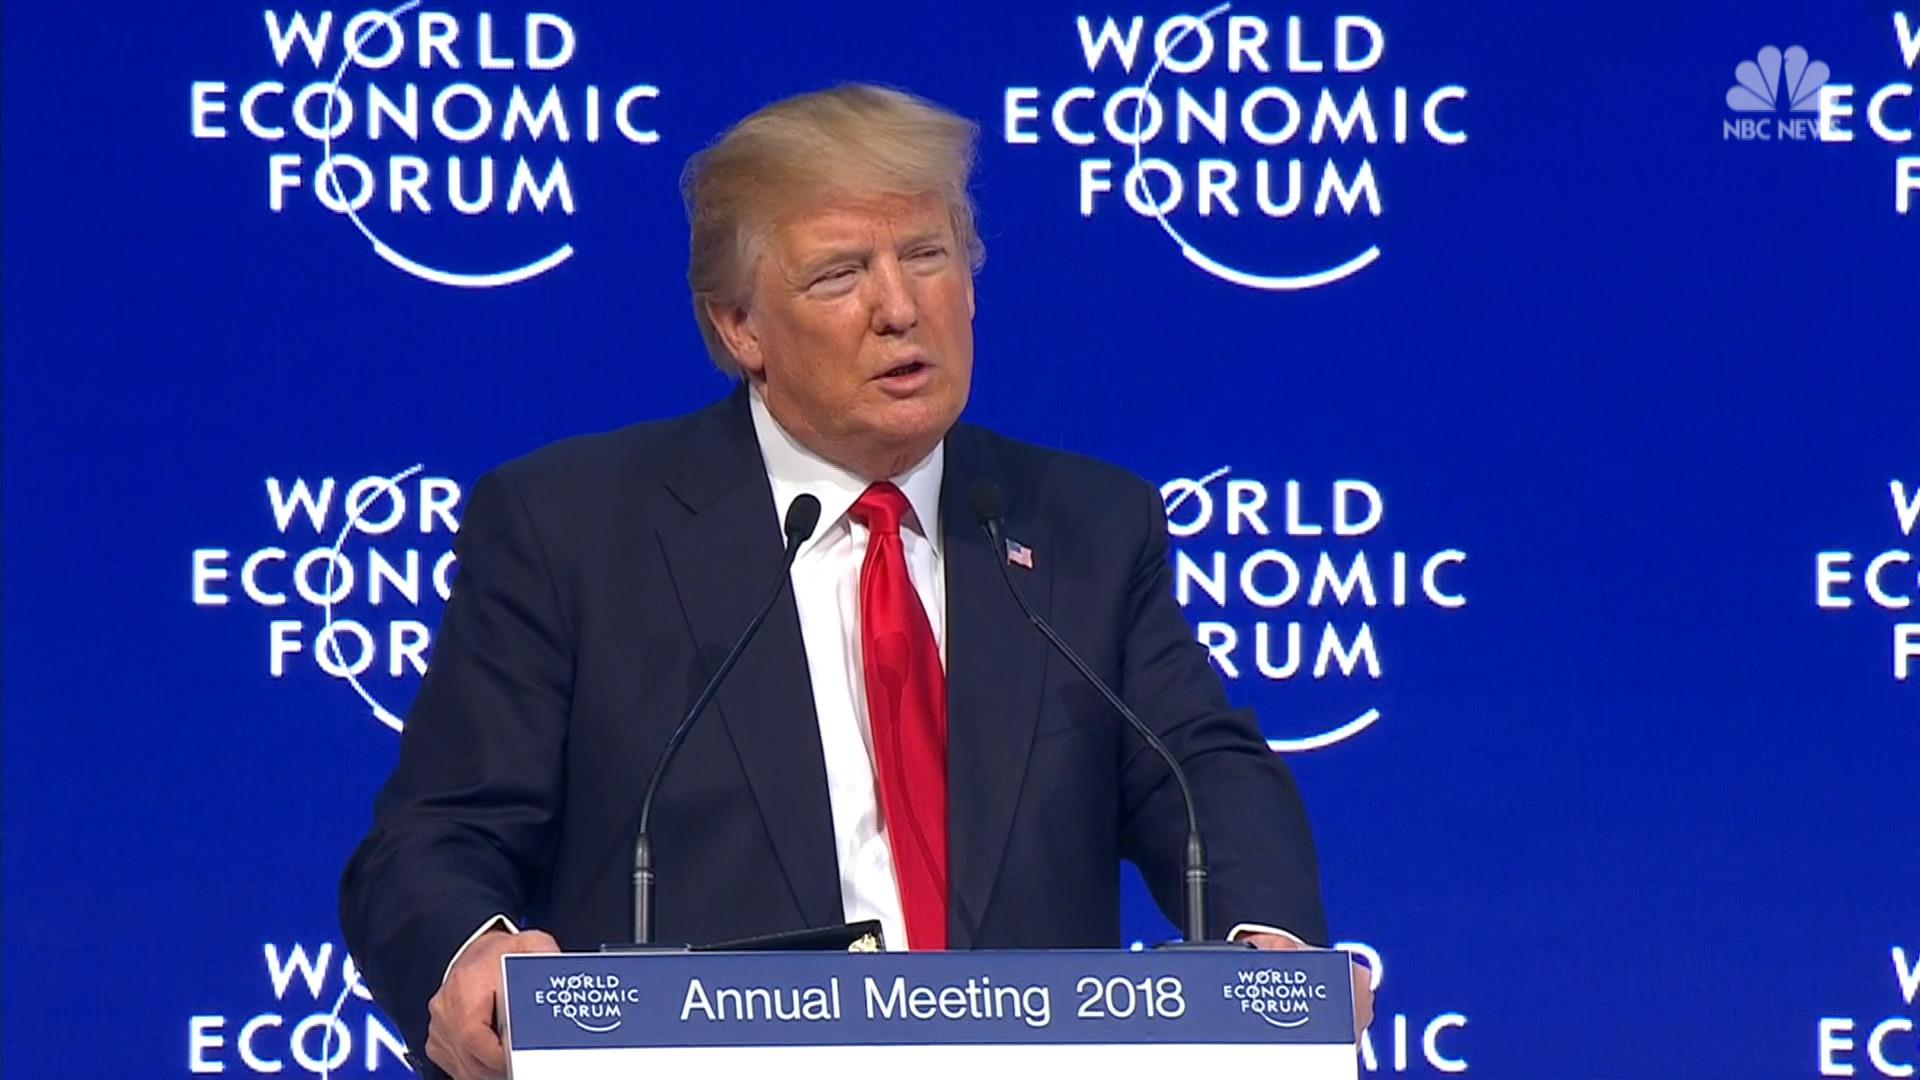 Trump in Davos: 'America is open for business'